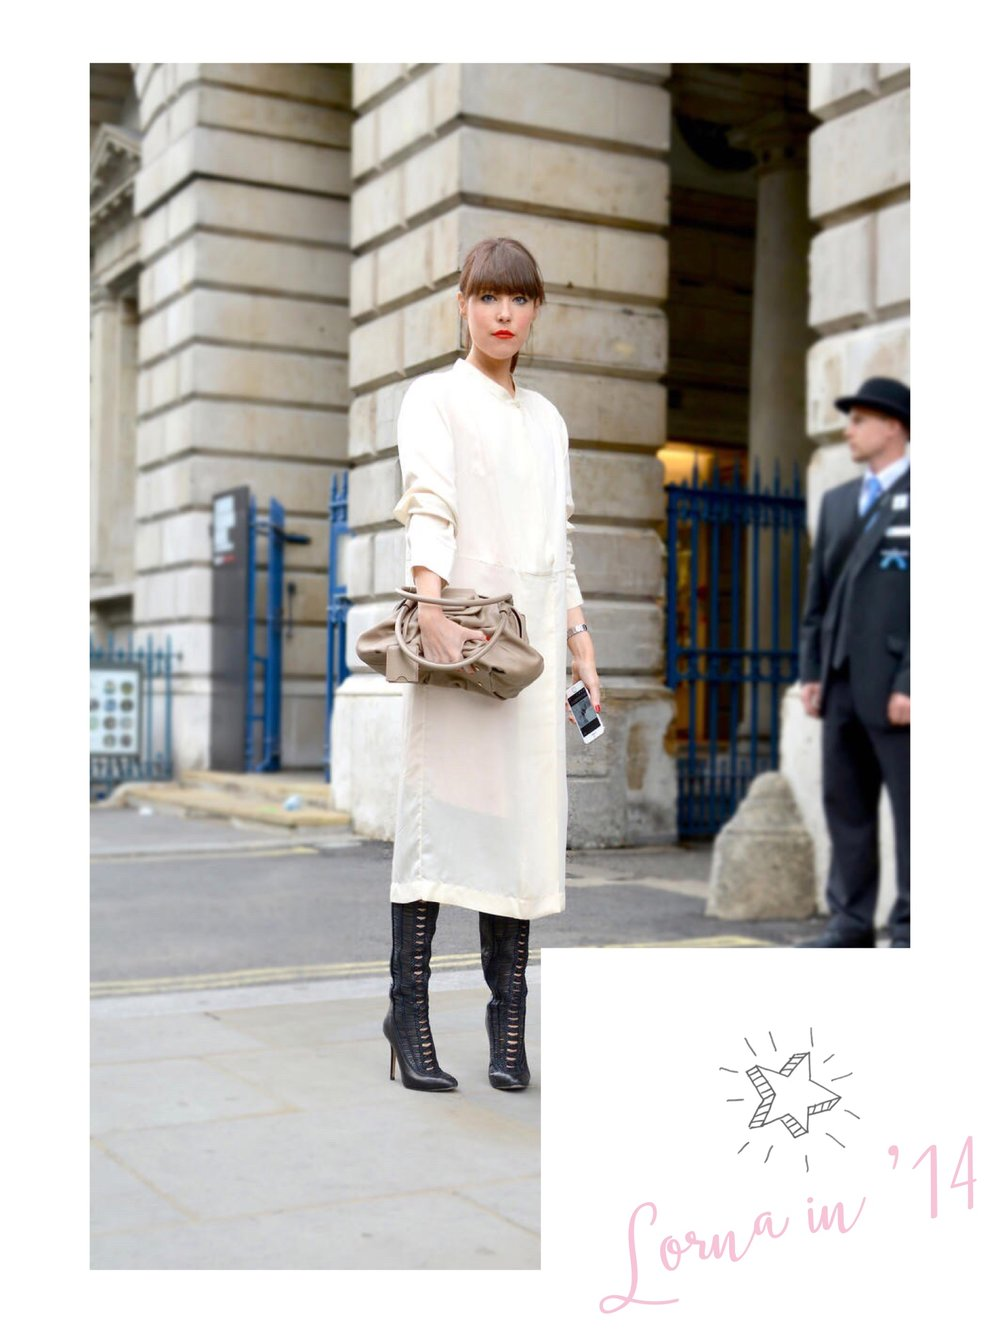 Lorna Luxe, Lorna Andrews, Lorna Andrews Husband, Street Style Luxe, Lorna Luxe Age